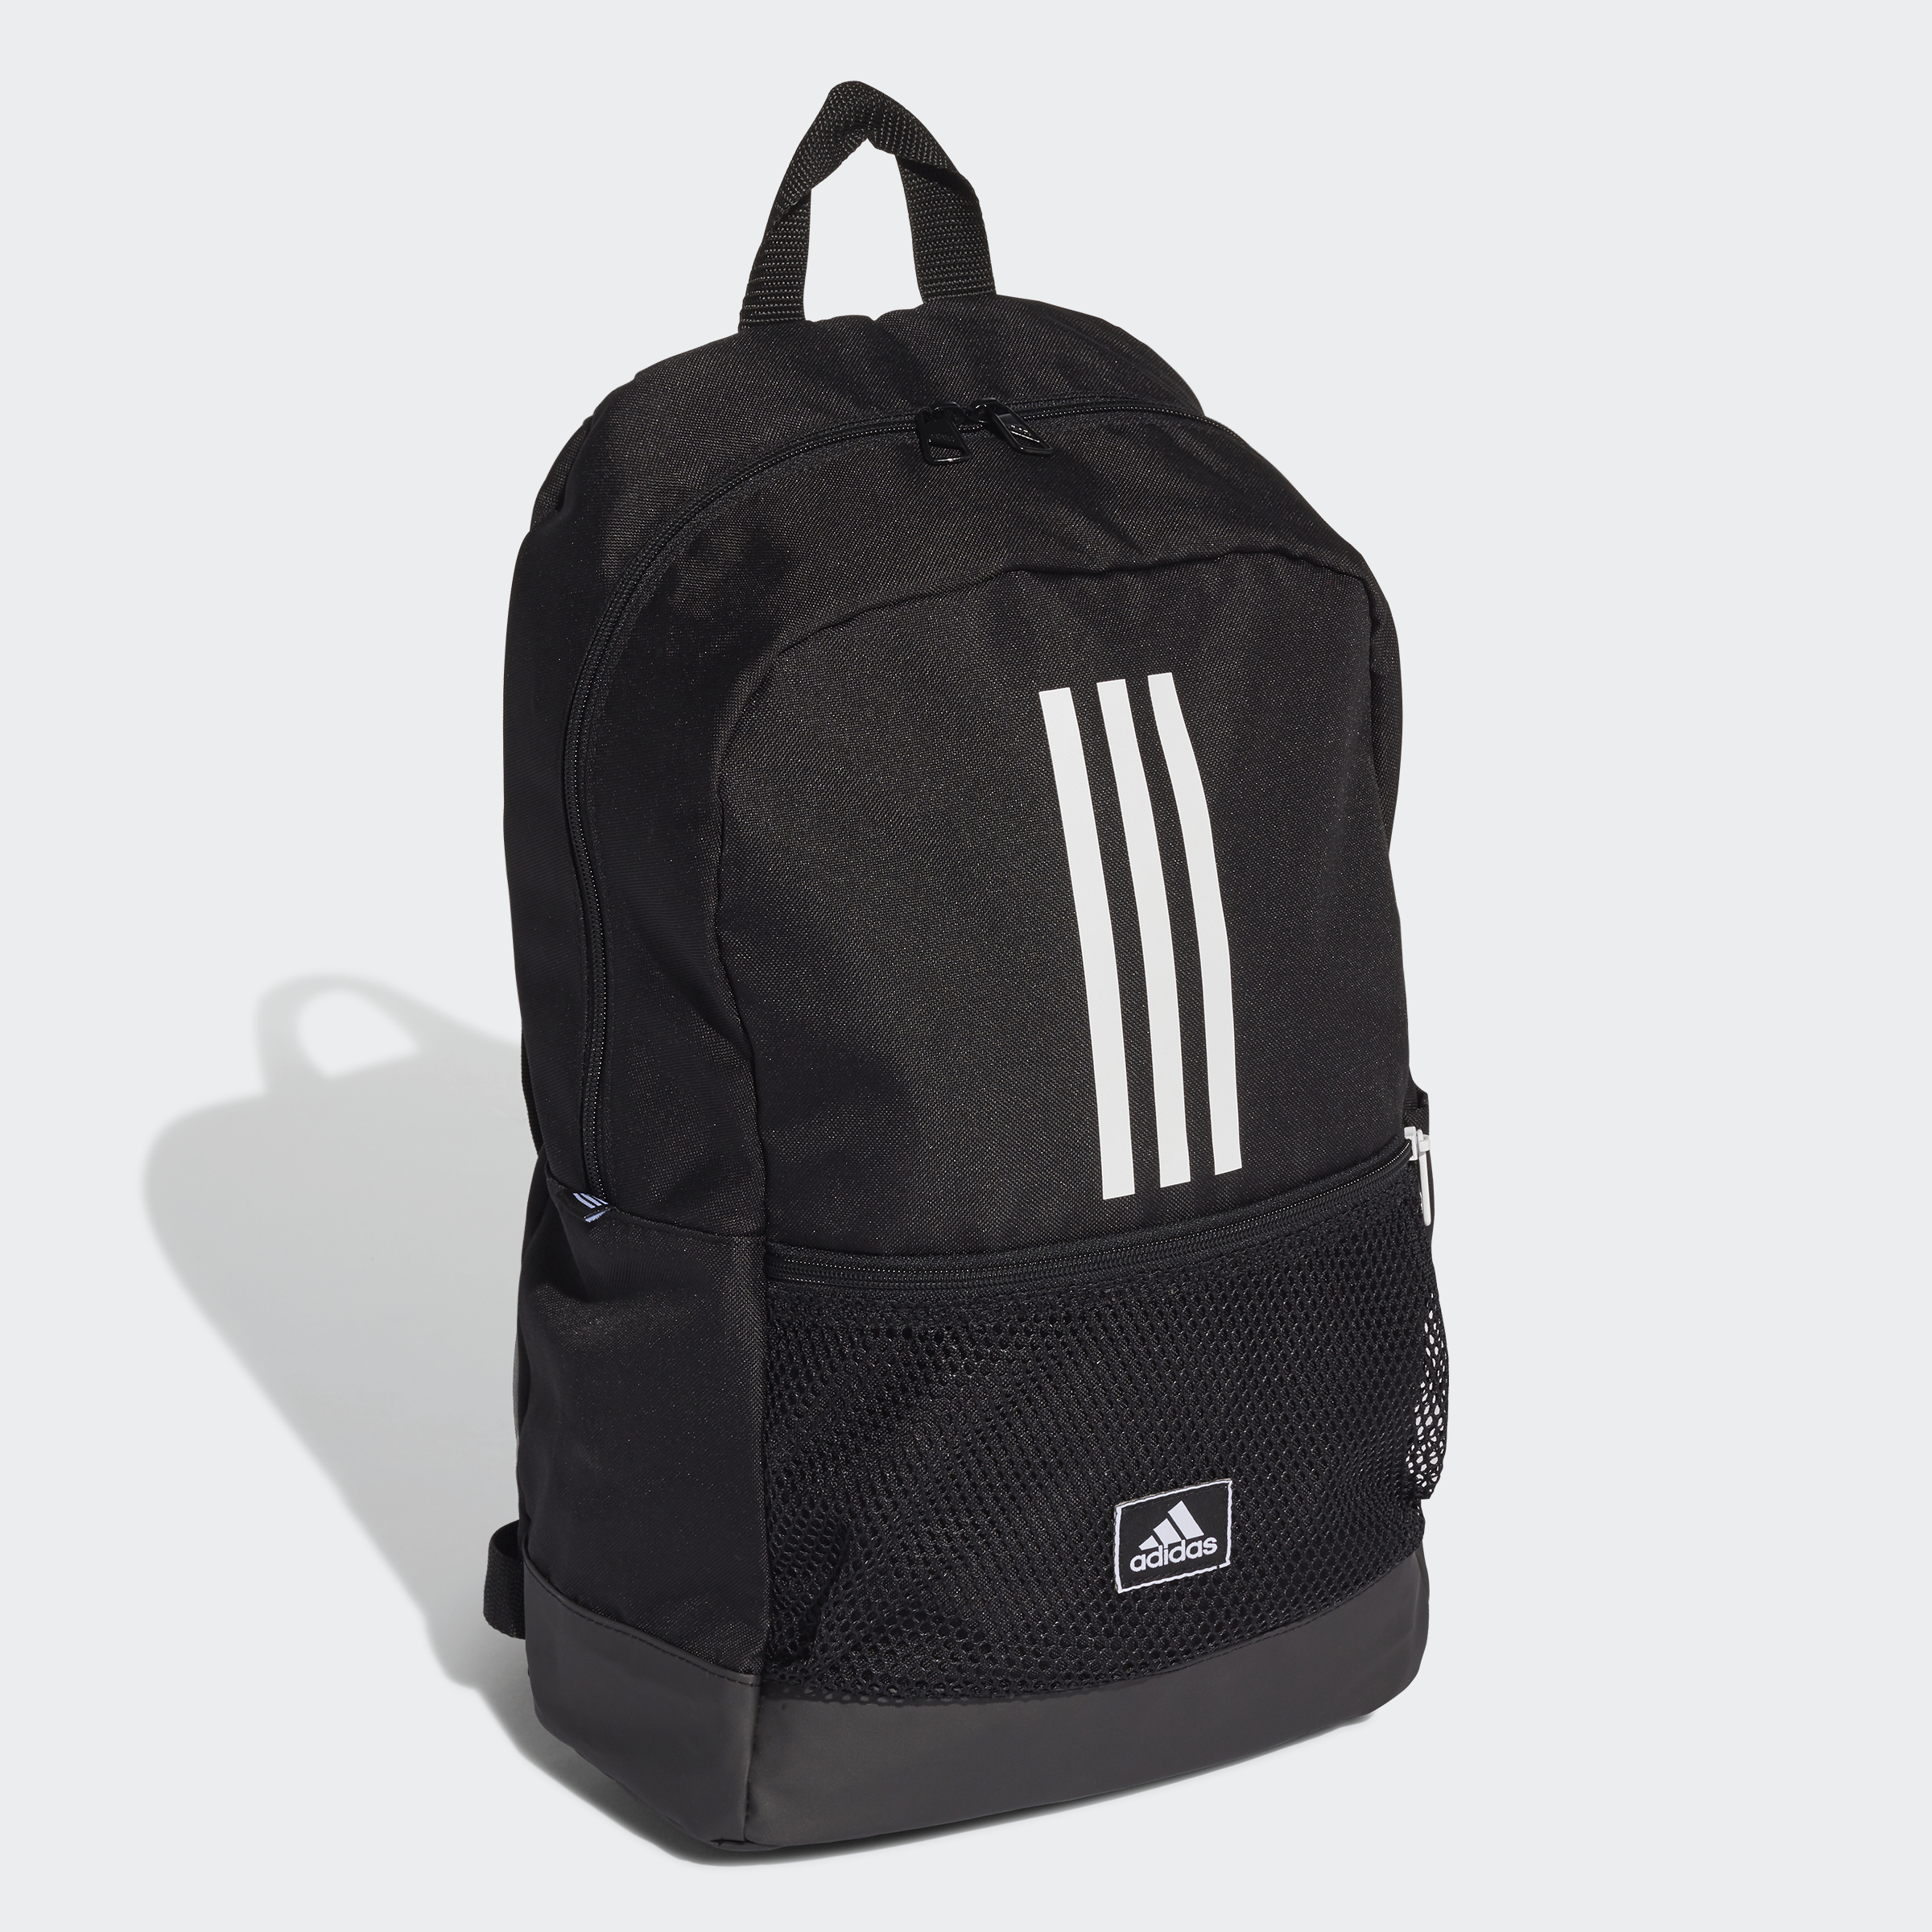 adidas-Classic-3-Stripes-Backpack-Bags thumbnail 12